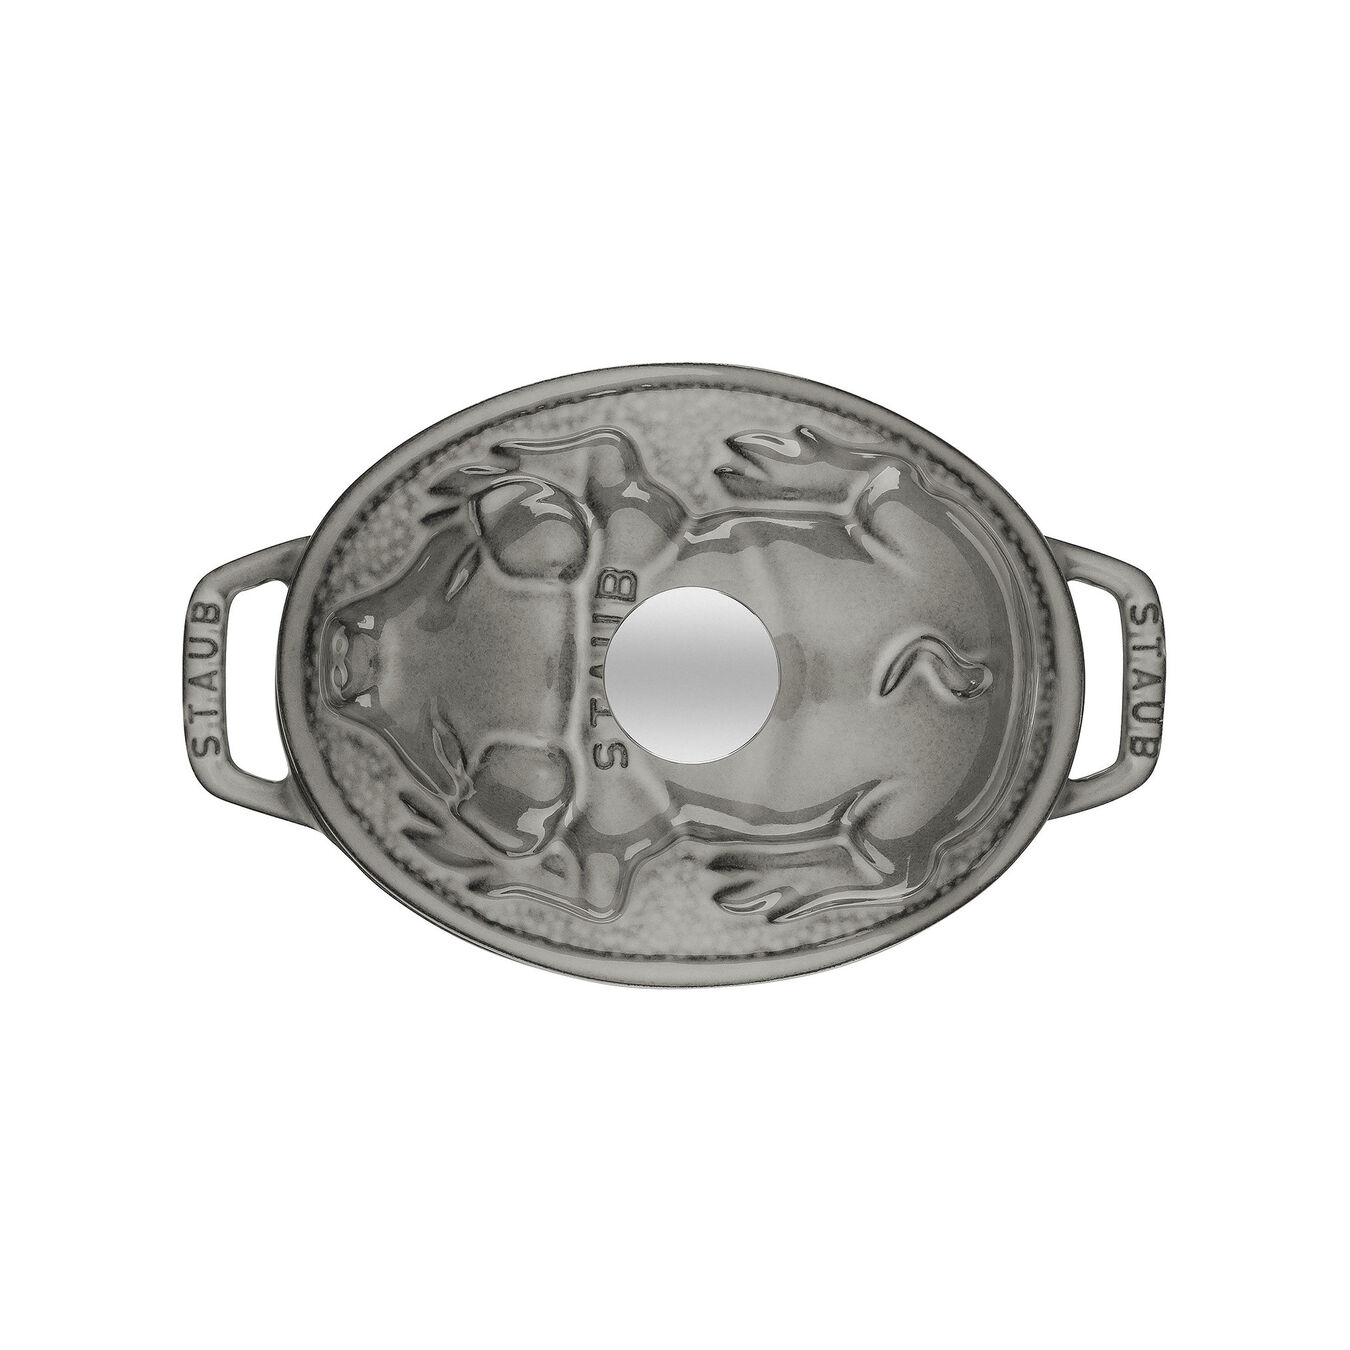 Cocotte 17 cm, oval, Graphit-Grau, Gusseisen,,large 3